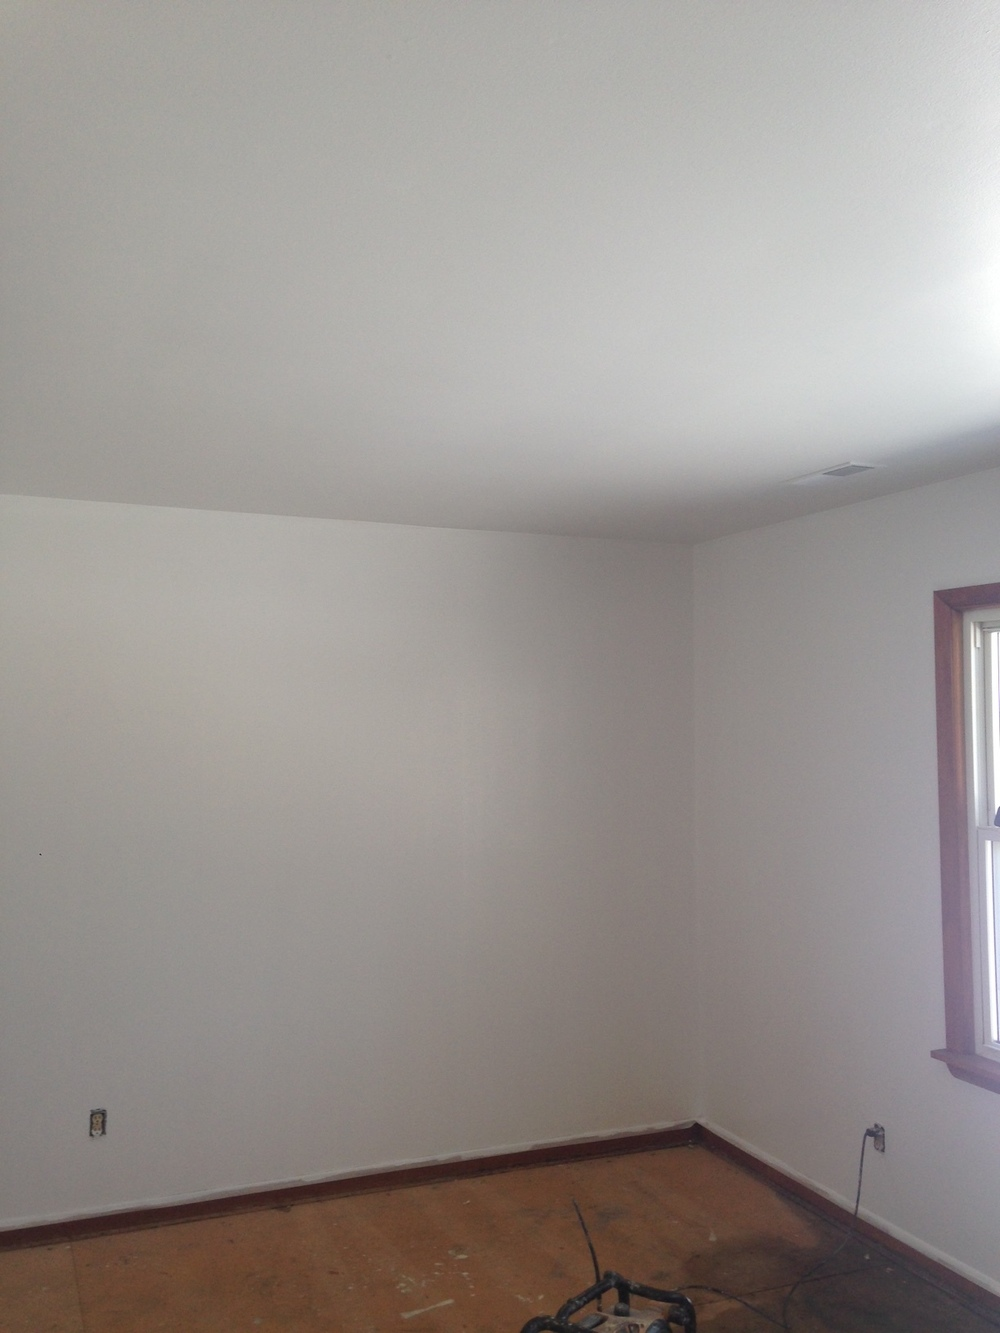 AFTER: PURE WHITE WALLS AND CEILING AND YOU CAN IMAGINE THE IMPROVEMENT IN THE SMELL AS WELL.